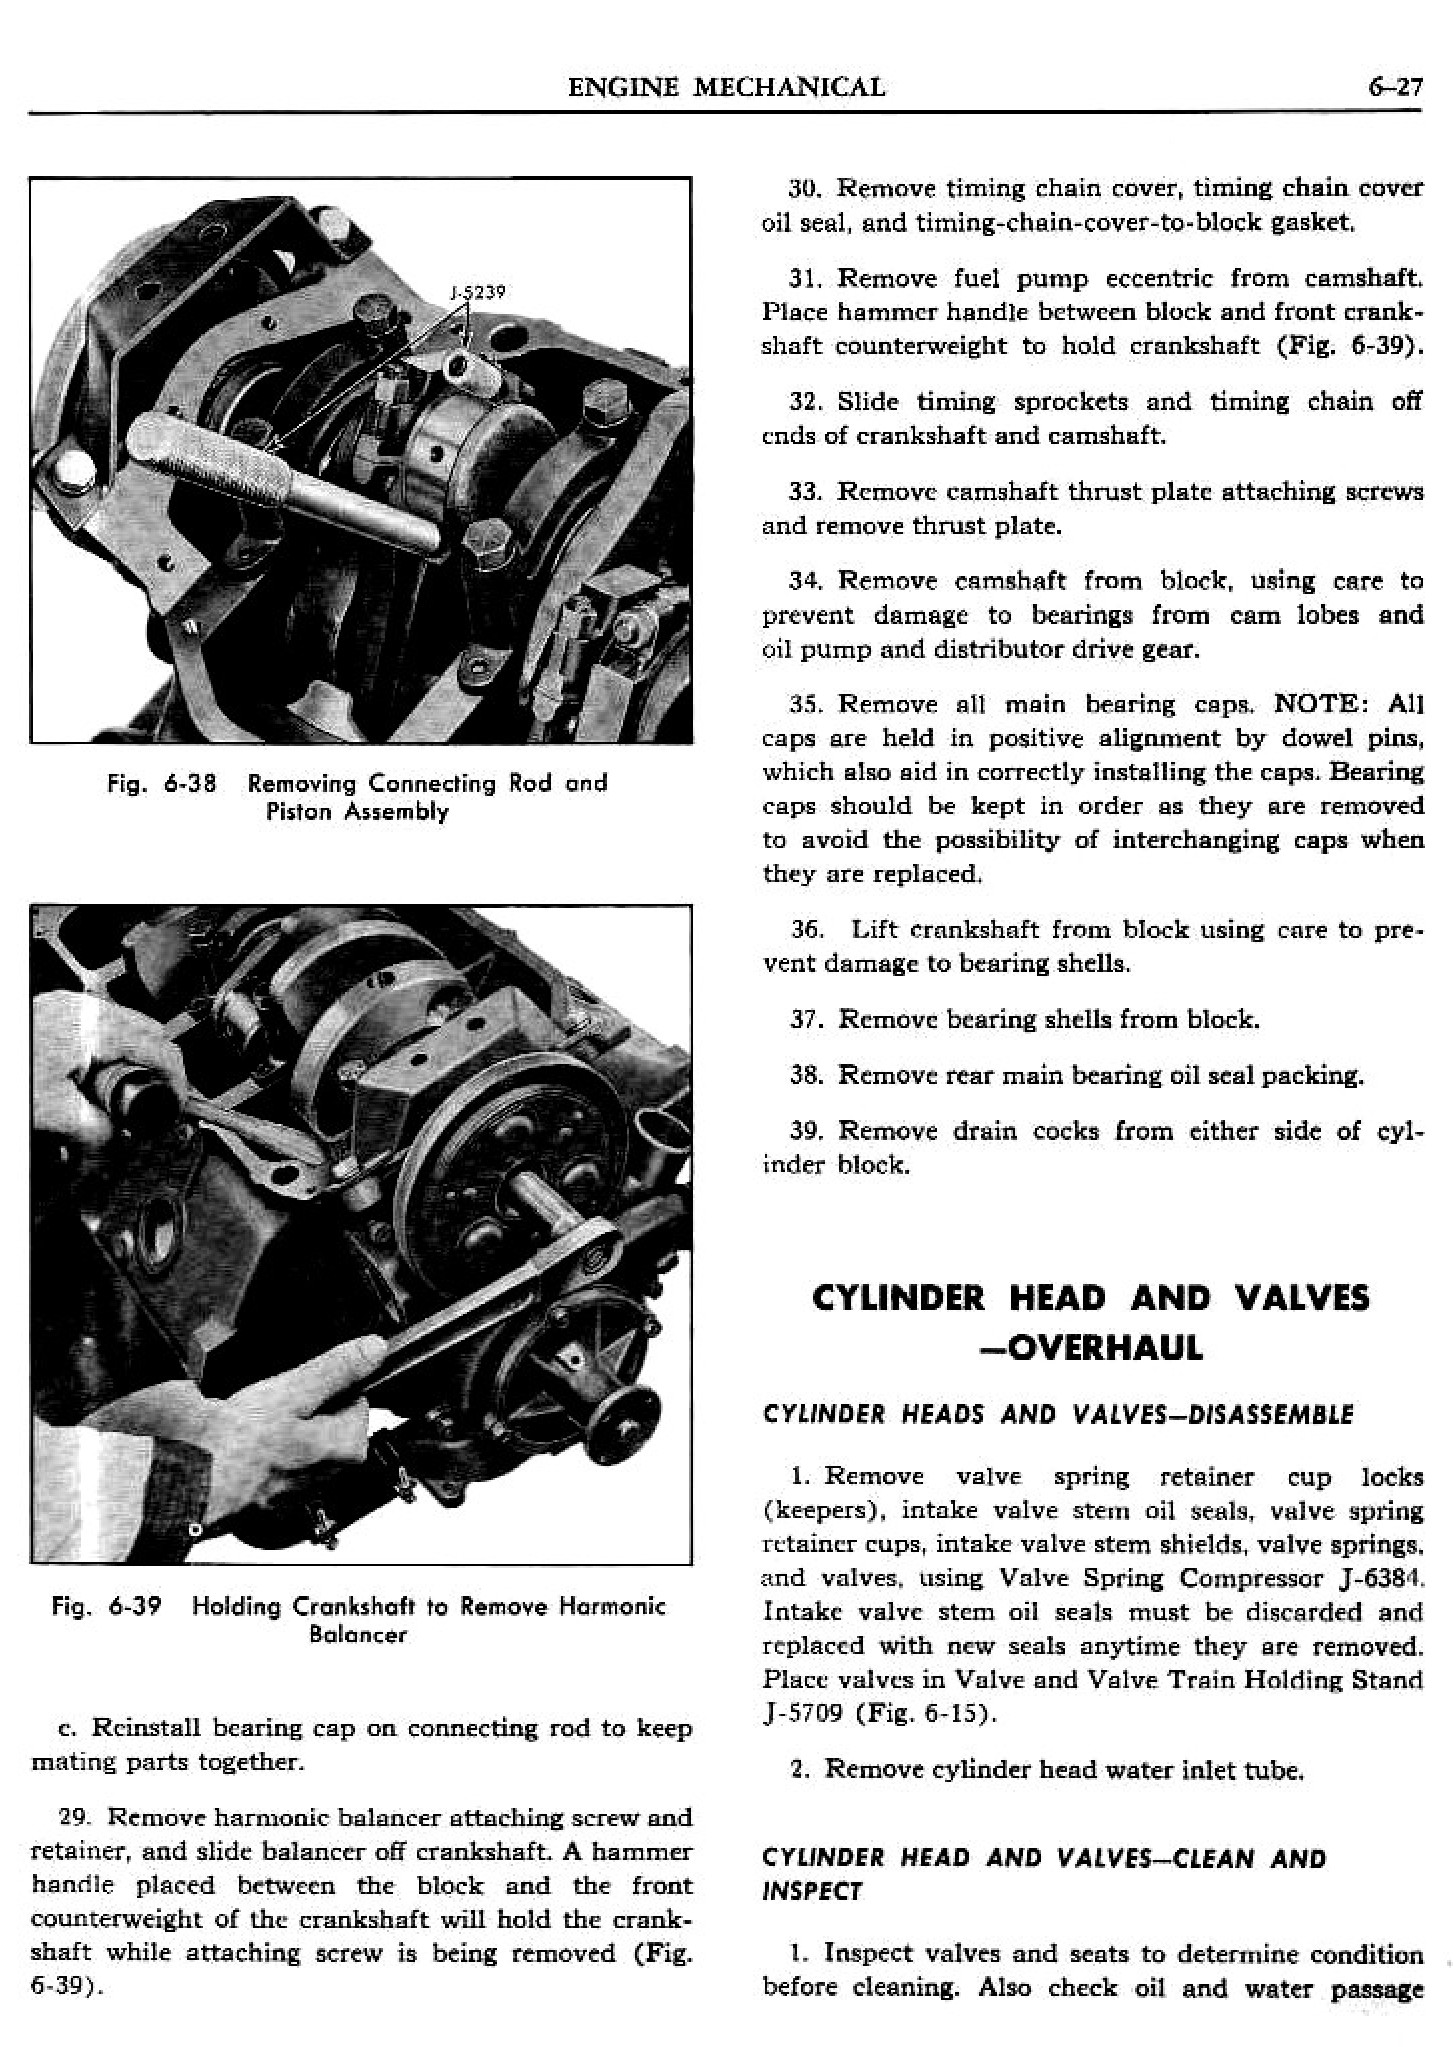 1956 Pontiac Shop Manual- Engine Page 28 of 56